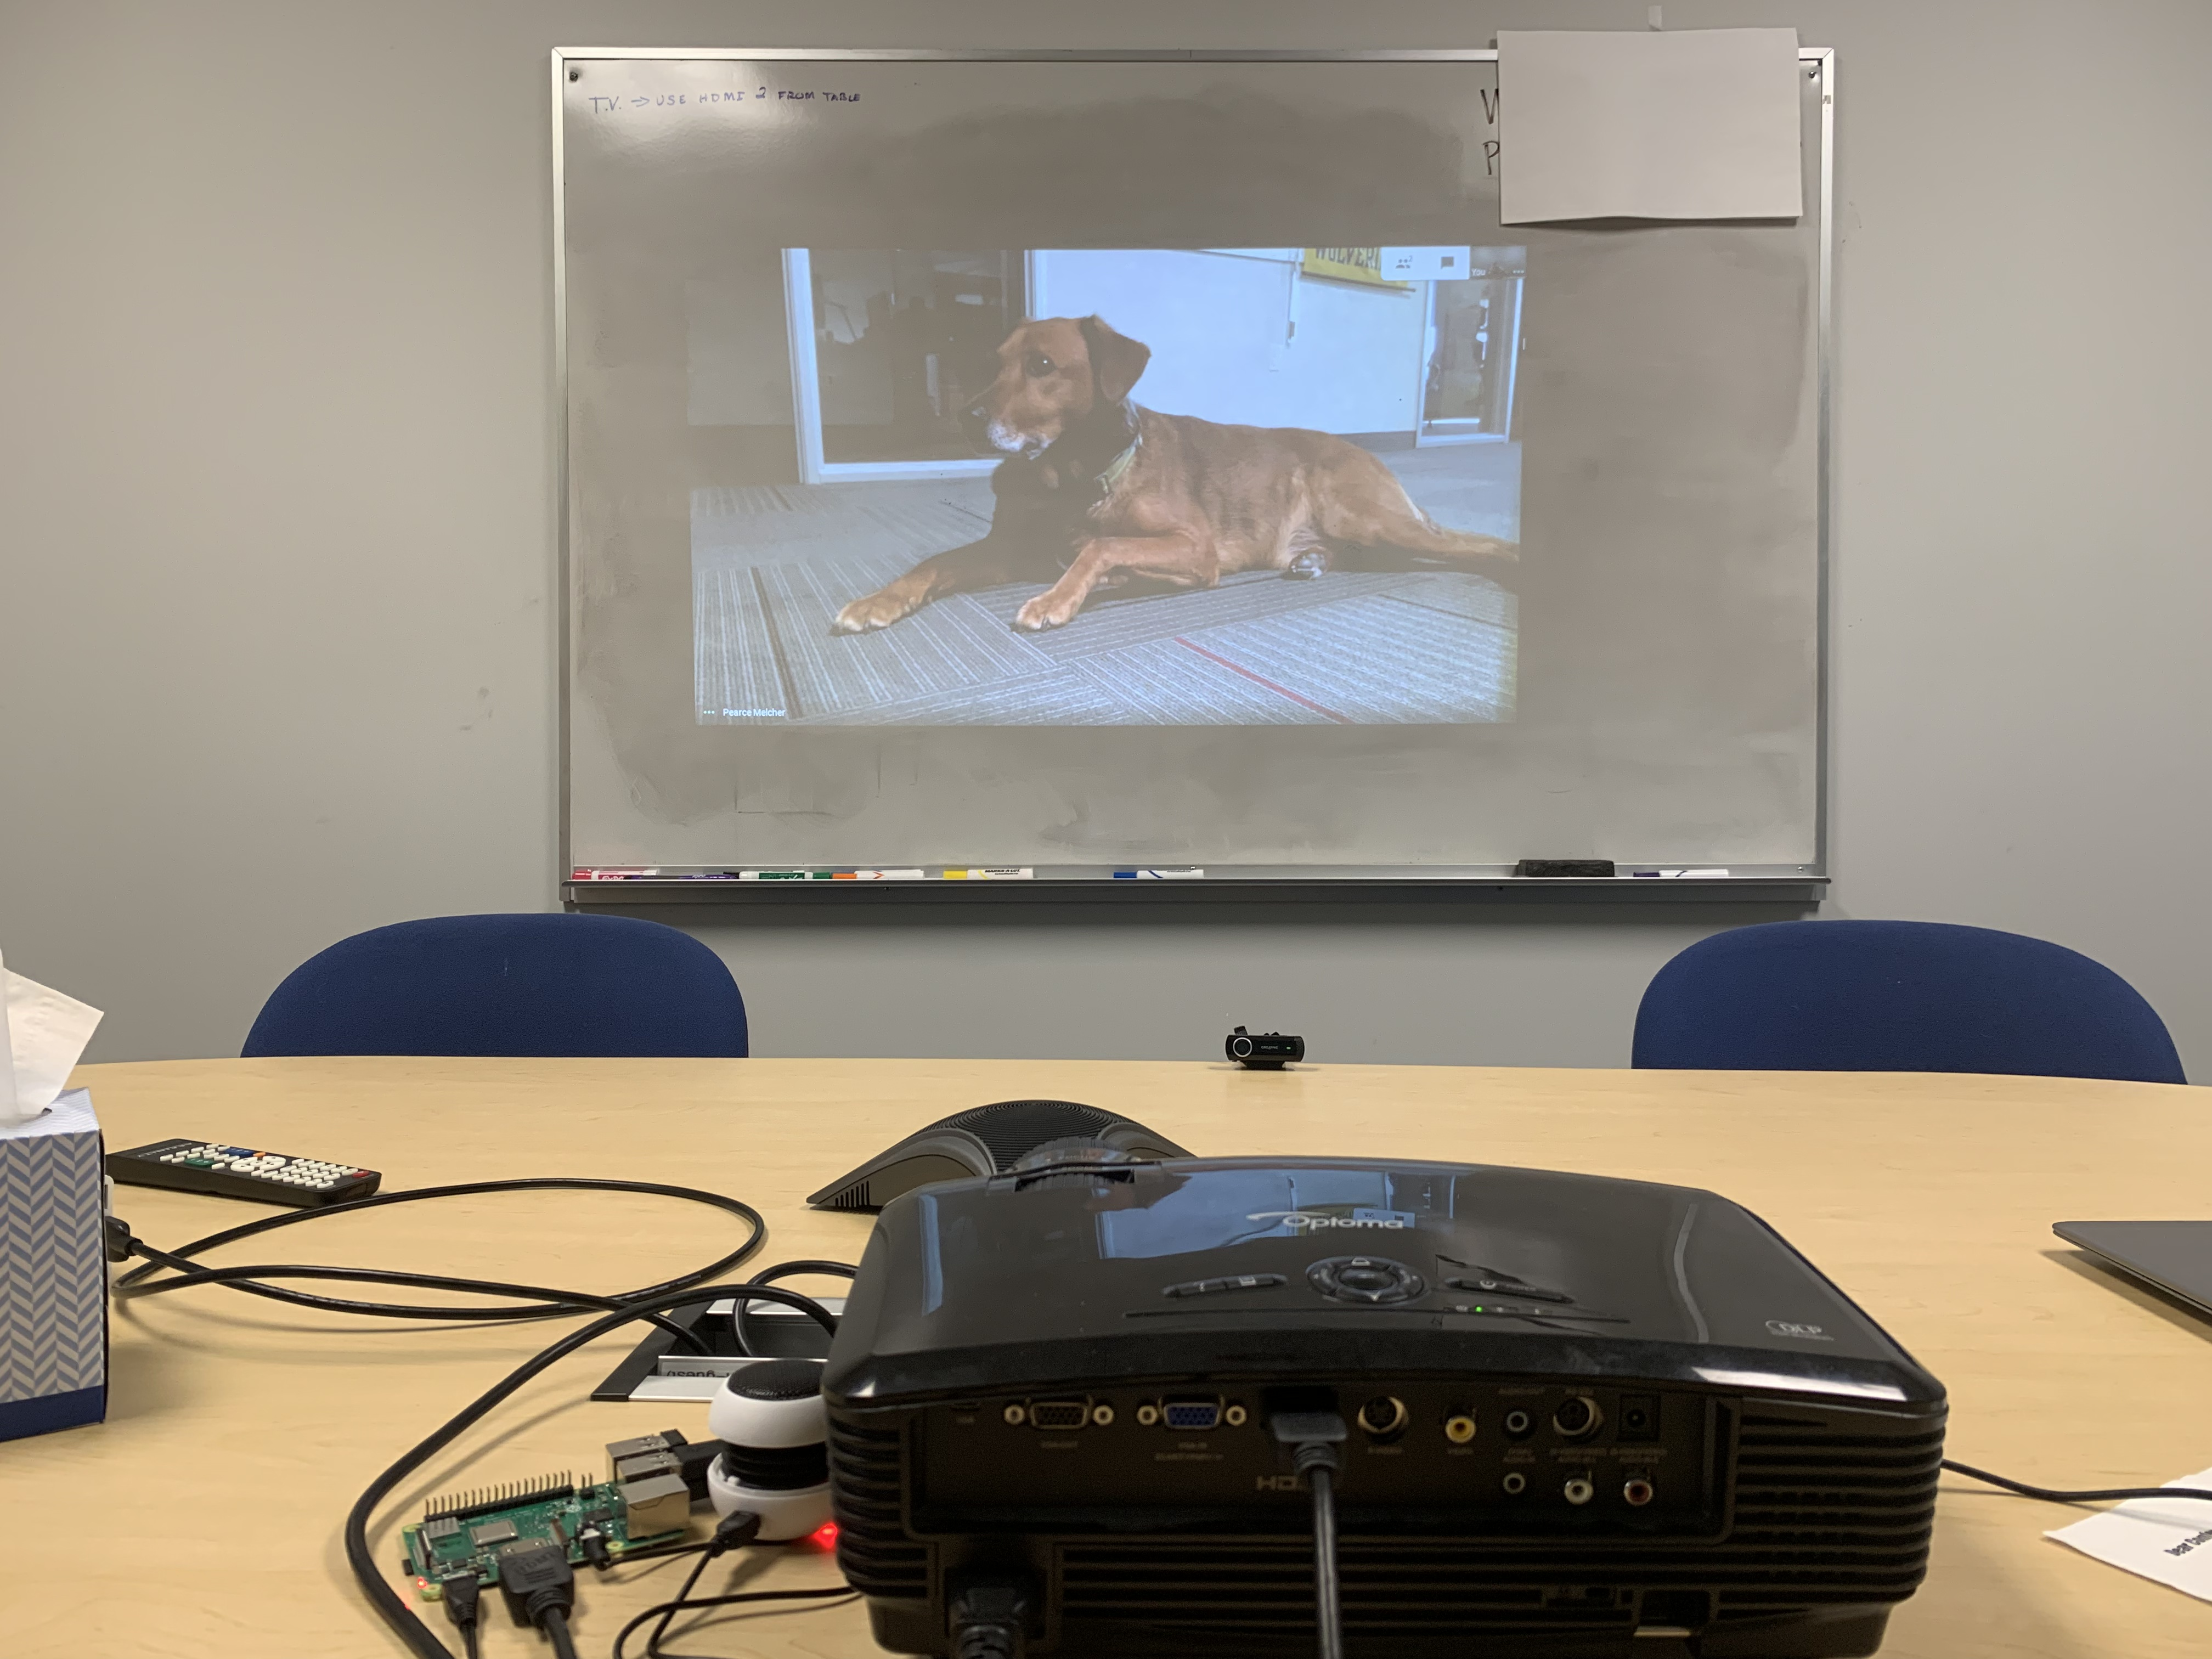 Enginursday: DIY Videoconferencing Wall Project - News